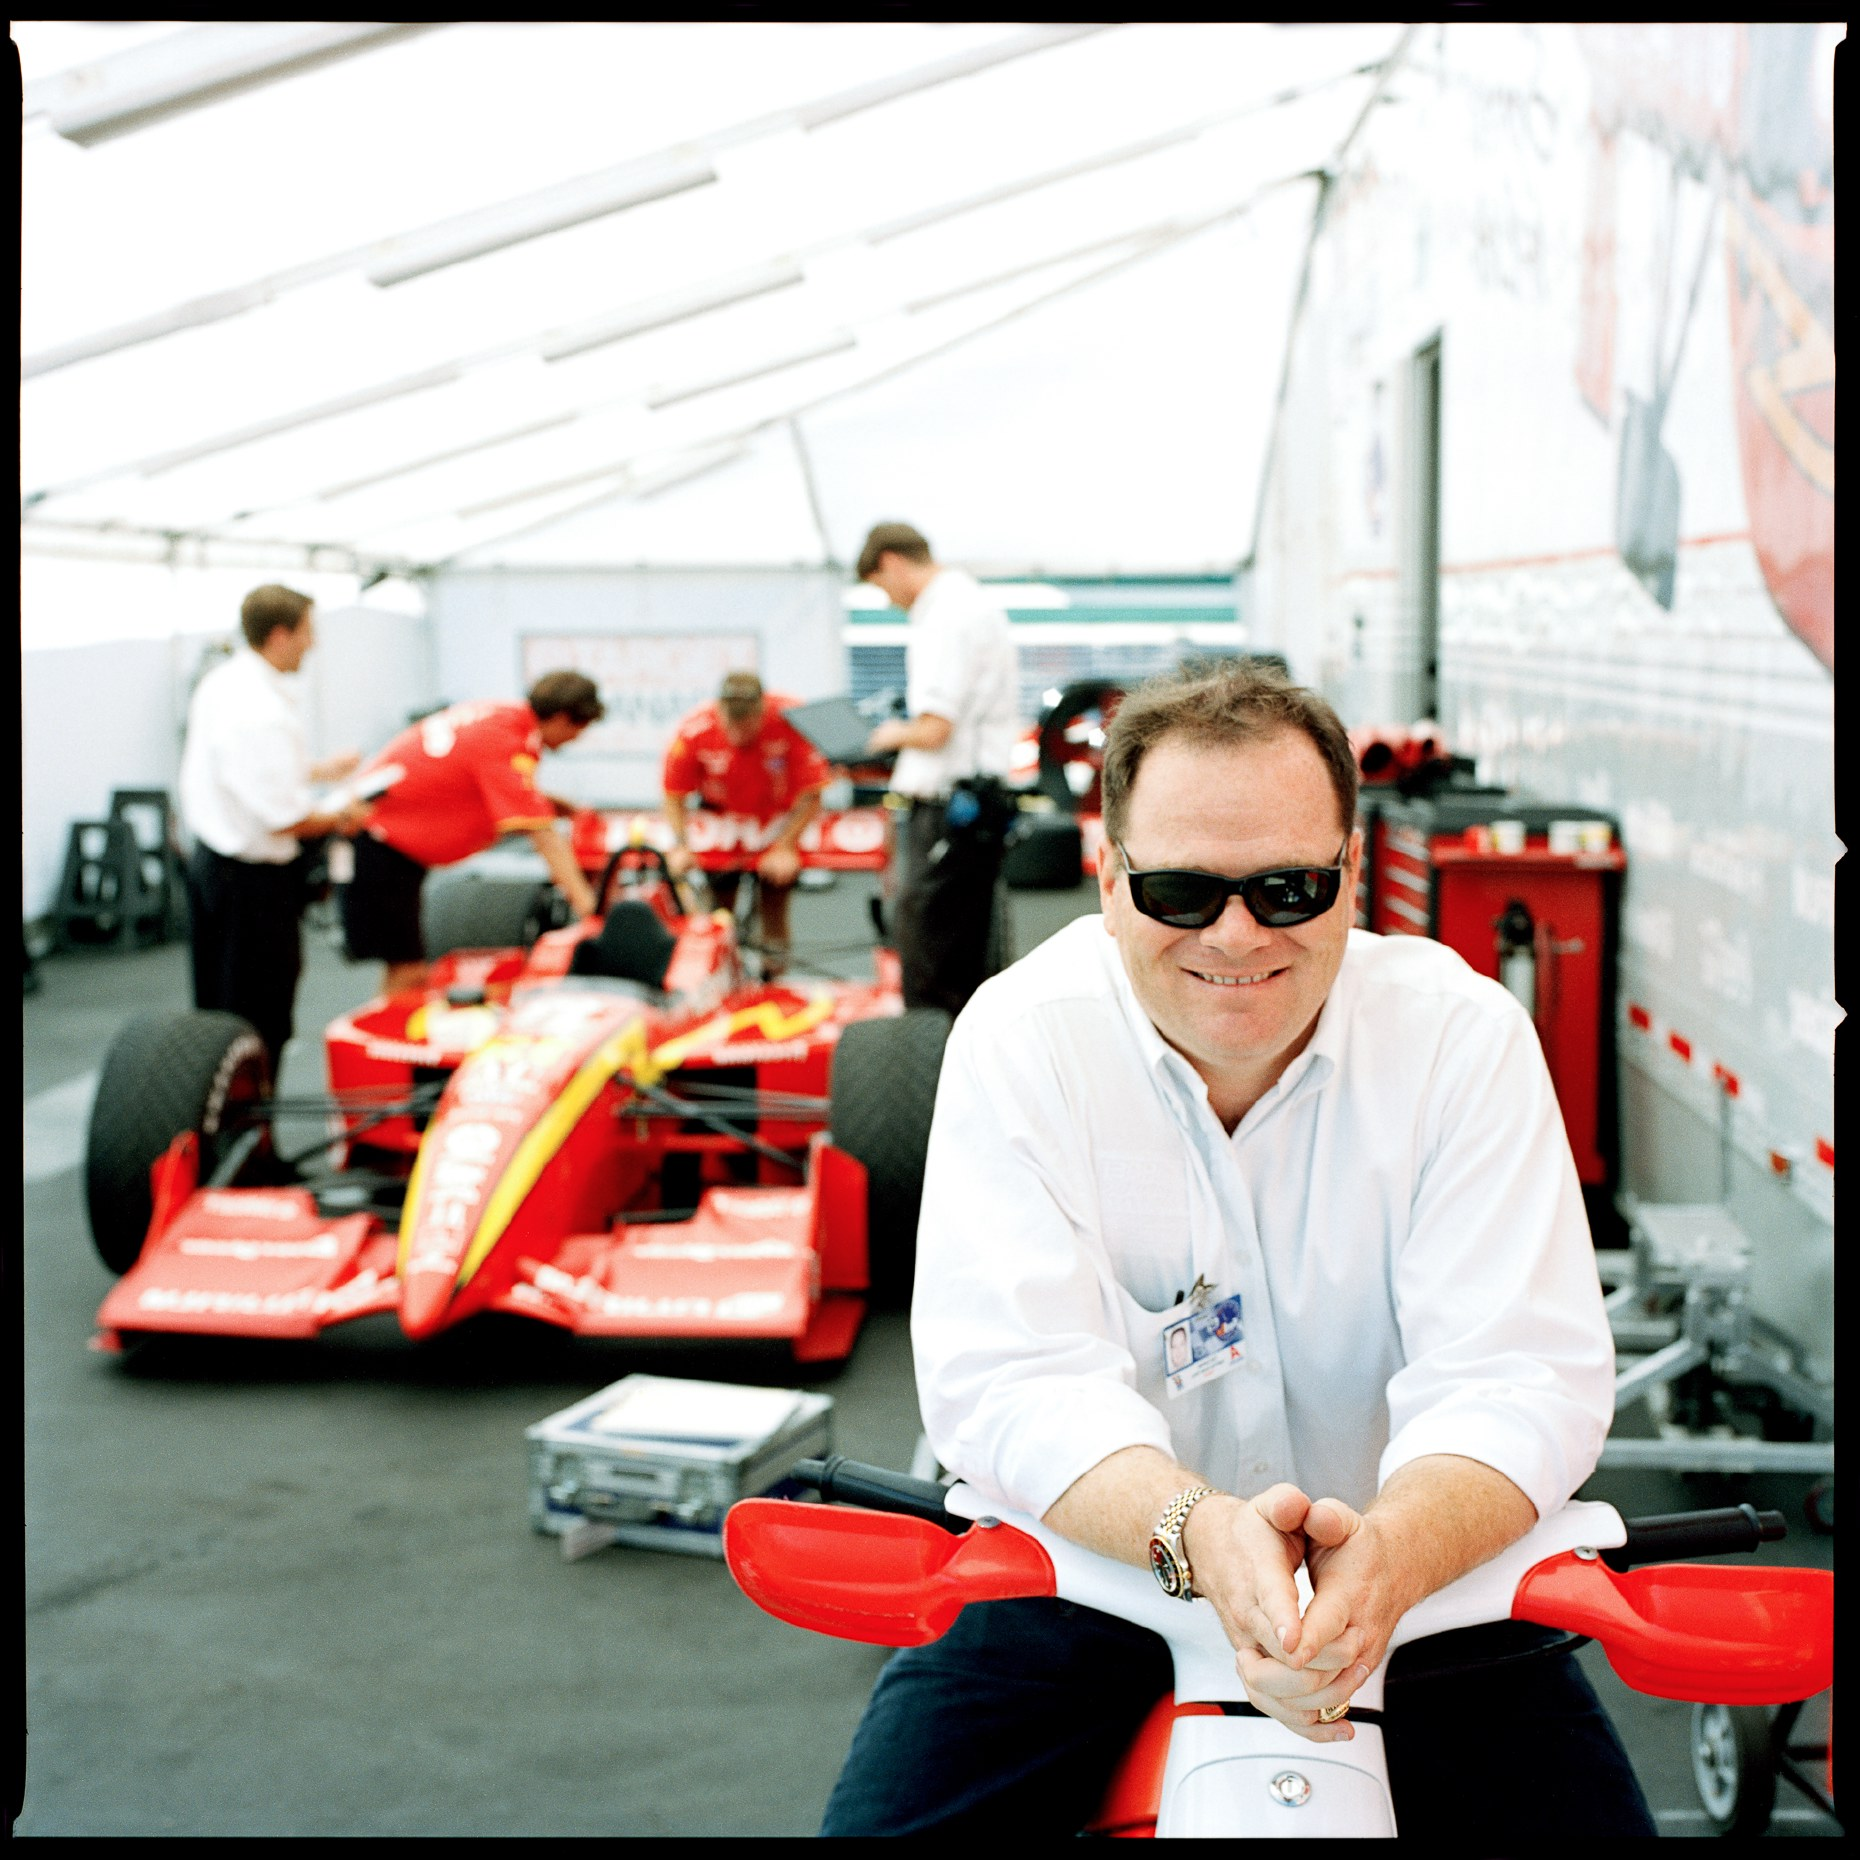 Chip Ganassi - Owner Chip Ganassi Racing